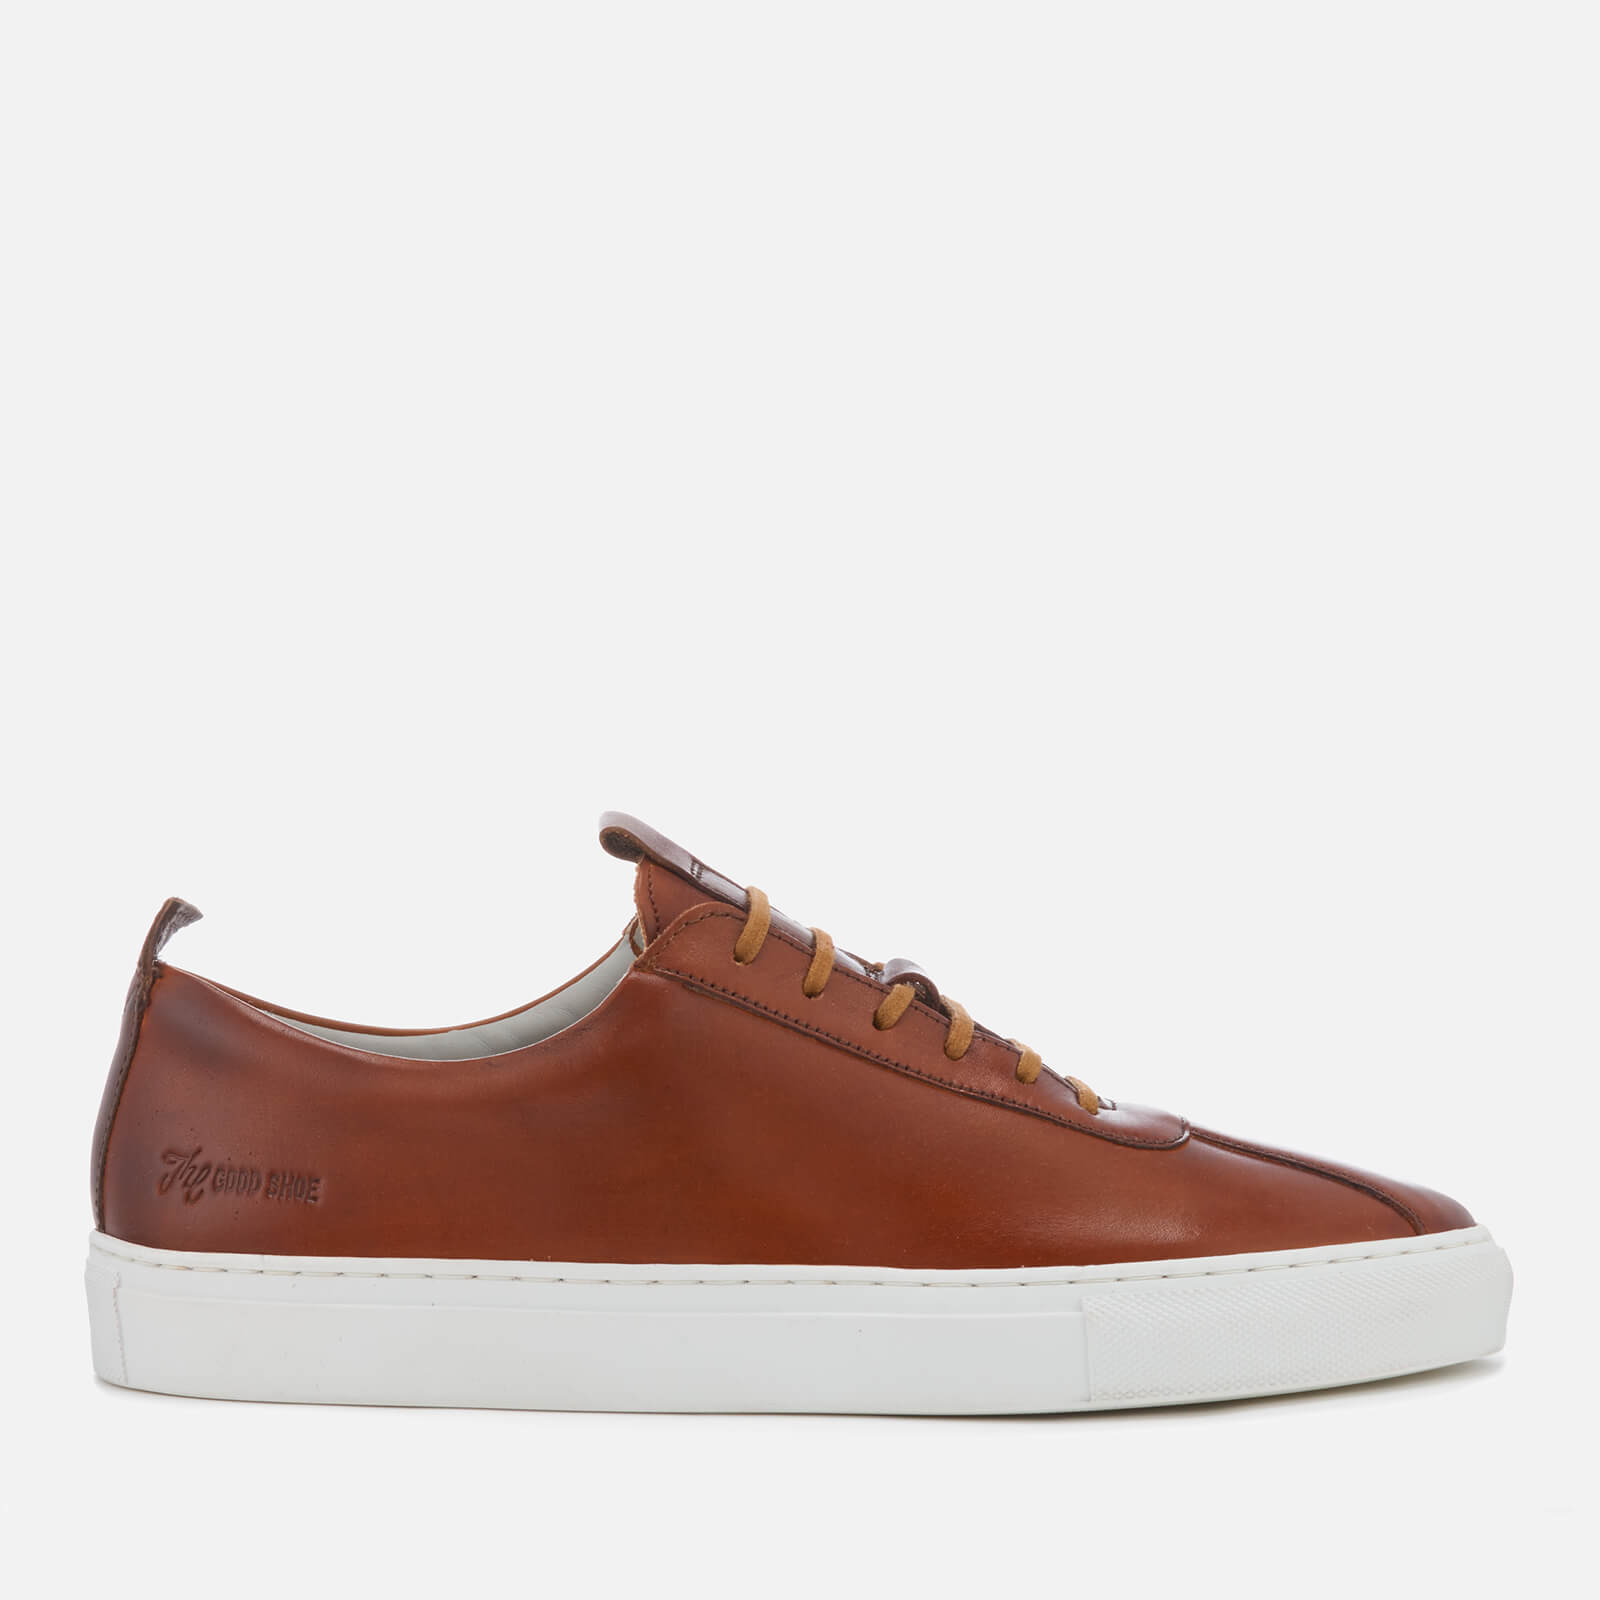 f5f2926836 Grenson Men's Sneaker 1 Hand Painted Leather Cupsole Trainers - Tan